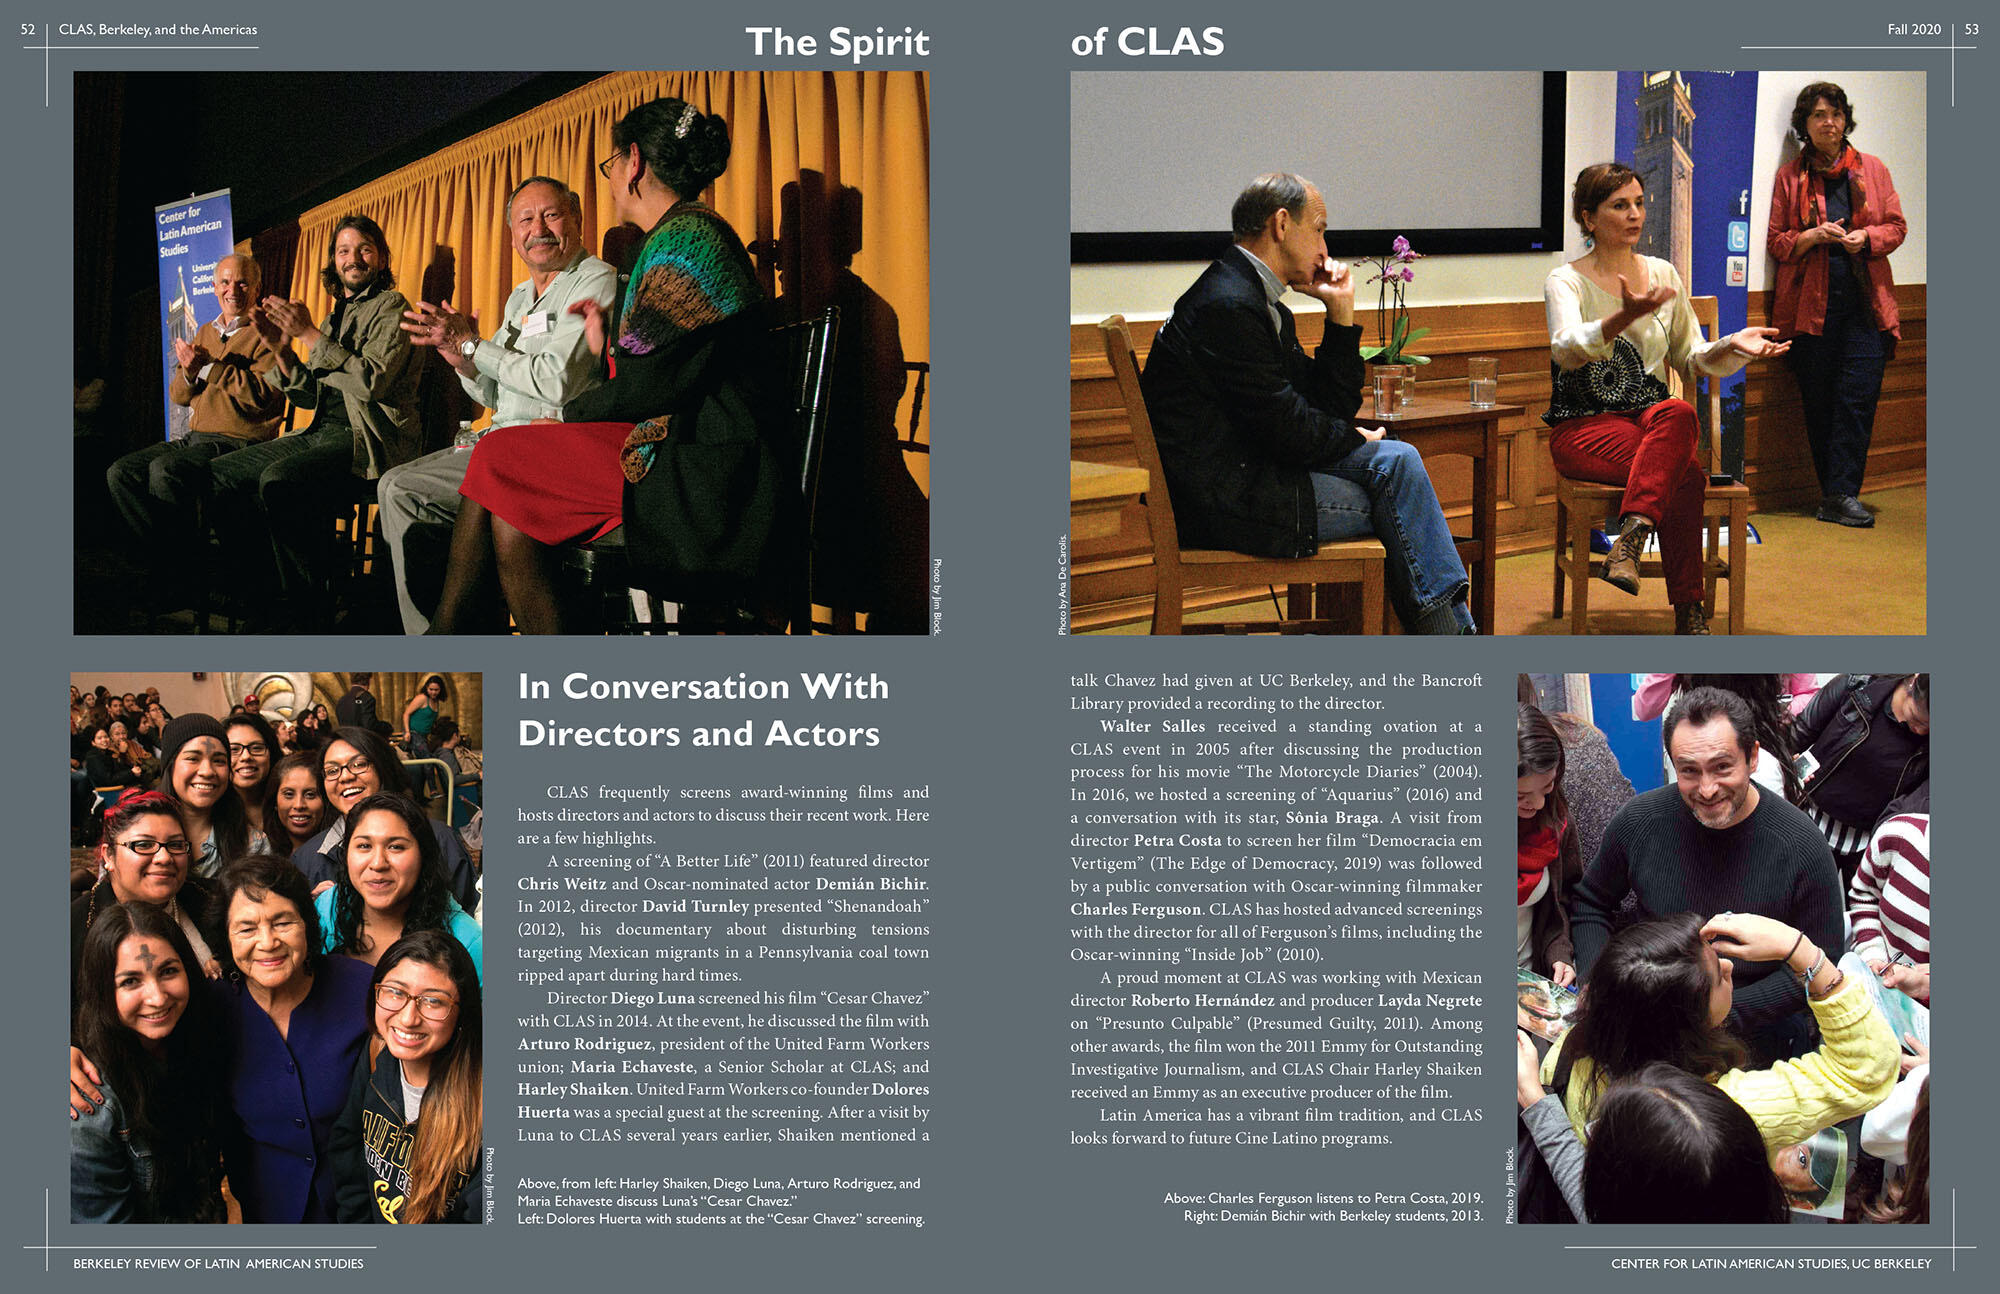 Two pages dedicated to CLAS and film, including Charles Ferguson, Diego Luna (with Dolores Huerta at one of his screenings), Petra Costa, and Demián Bichir. (Image from CLAS.)